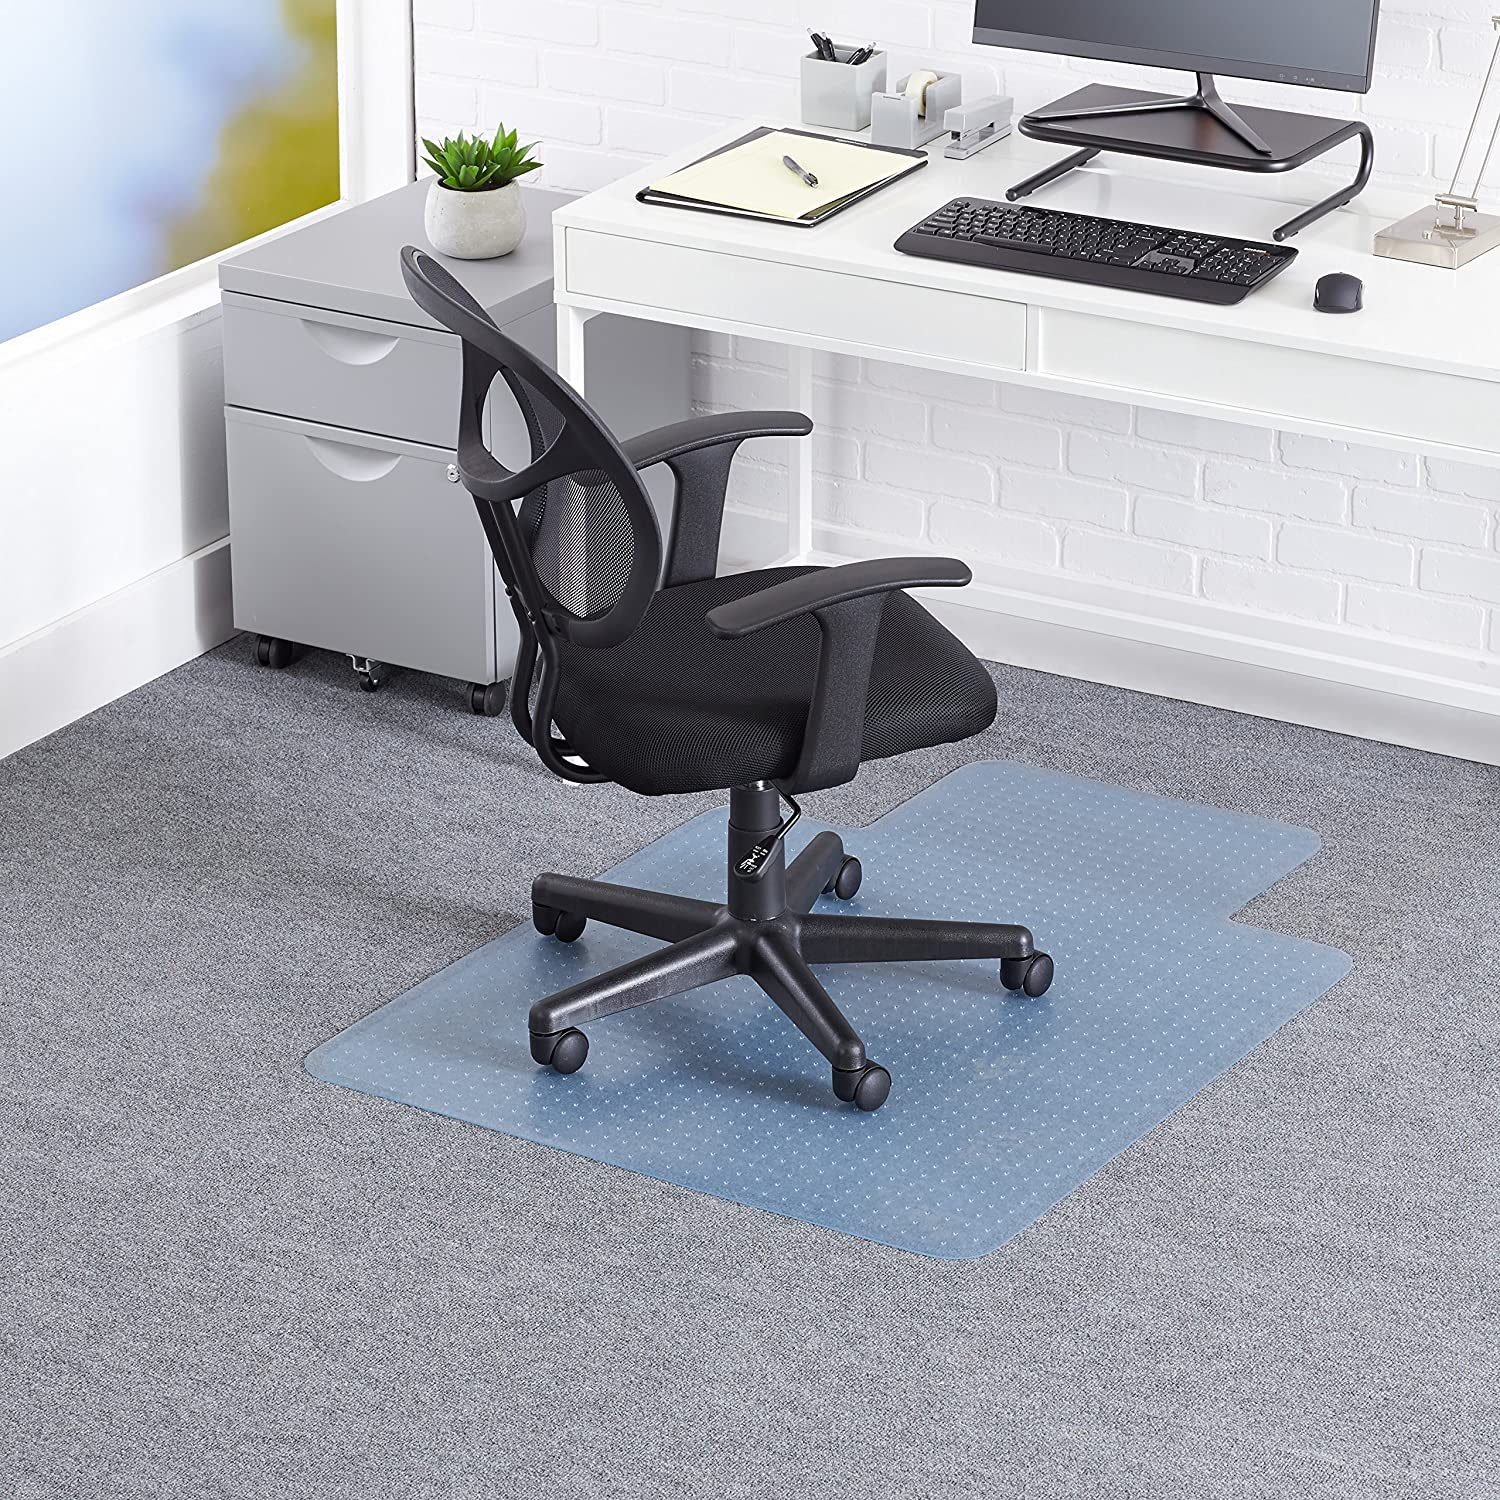 Amazon AmazonBasics Carpet Chair Mat 47in x 35in fice